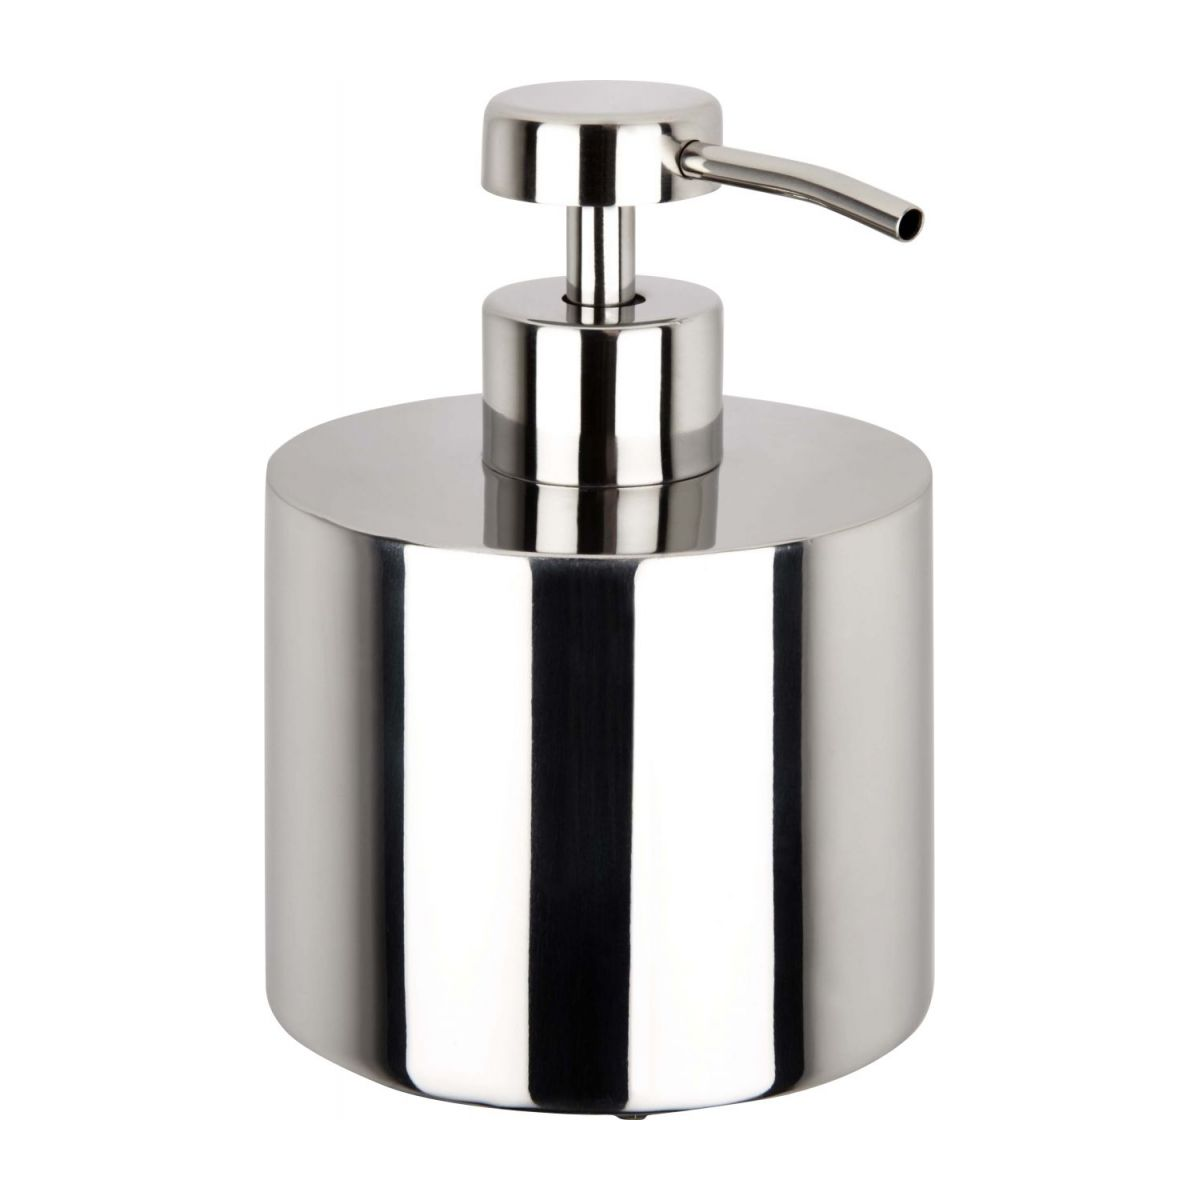 Soap dispenser in stainless steel n°1